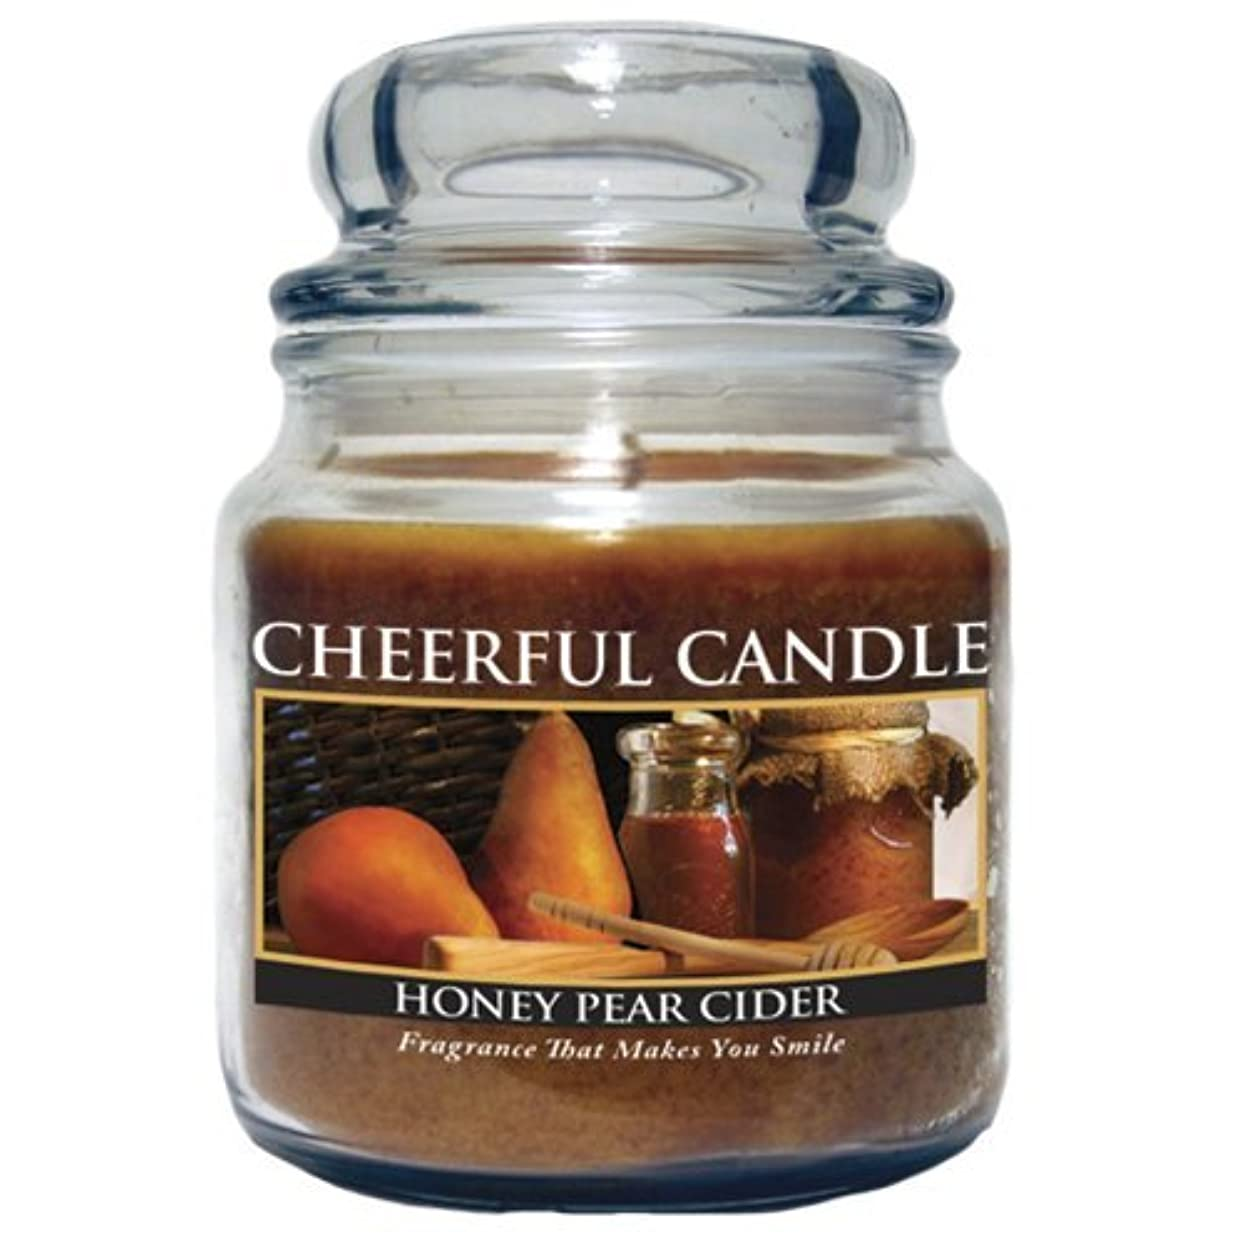 パステル創造削除するA Cheerful Giver Honey Pear Cider Jar Candle, 24-Ounce by Cheerful Giver [並行輸入品]